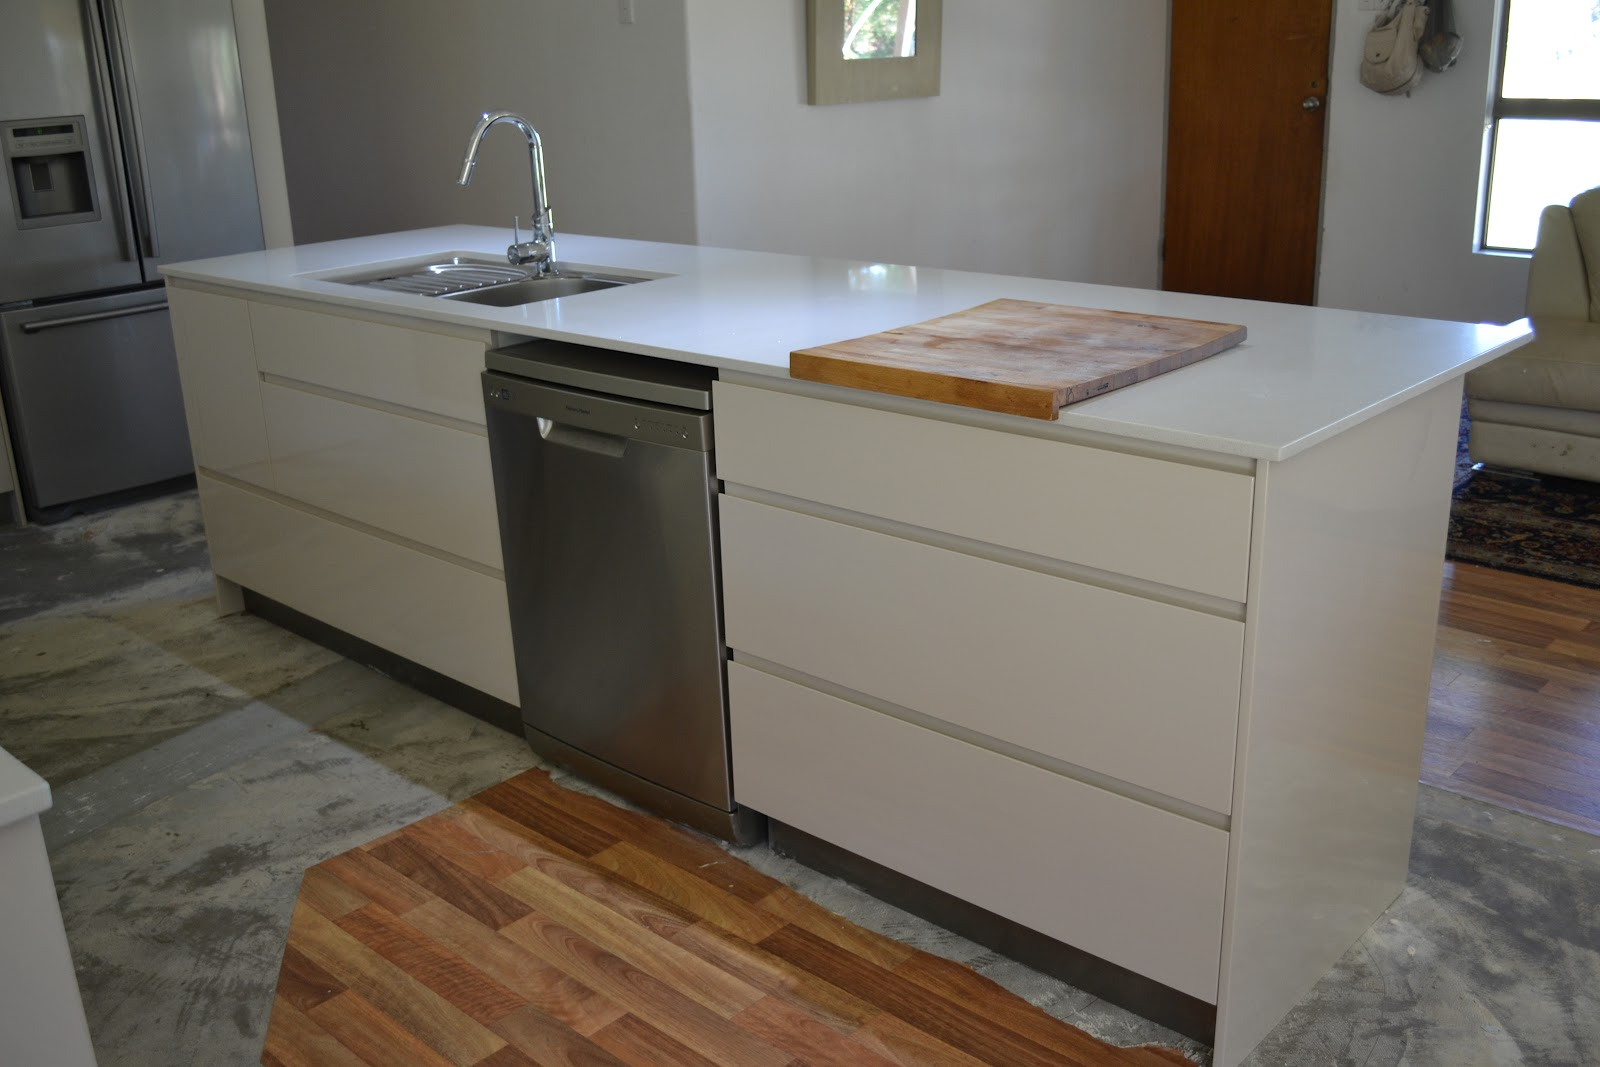 2 Plus 3 Makes 5 Drum Roll The New Kitchen